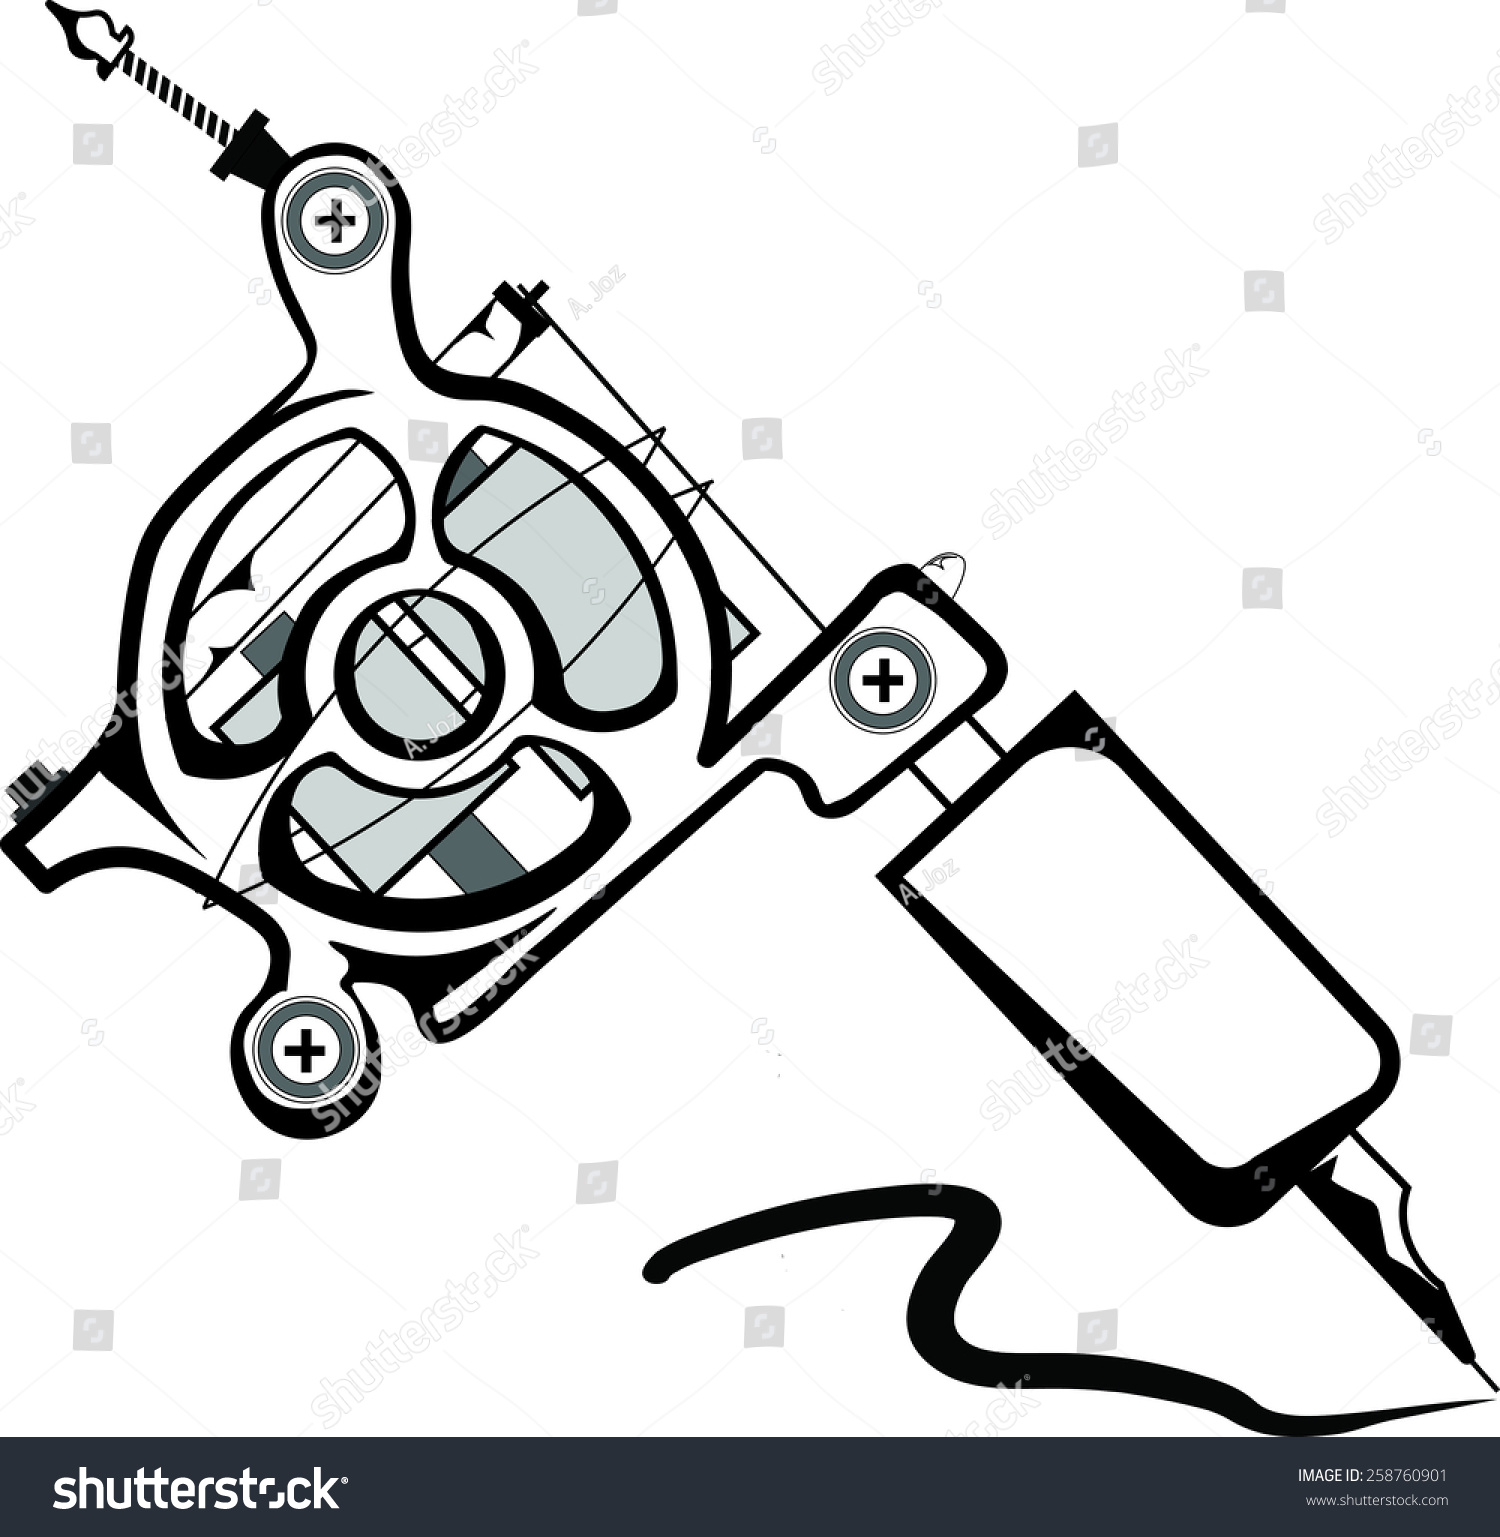 Coil Tattoo Machine Isolated On White Stock Vector Royalty Free Diagram Also As Well